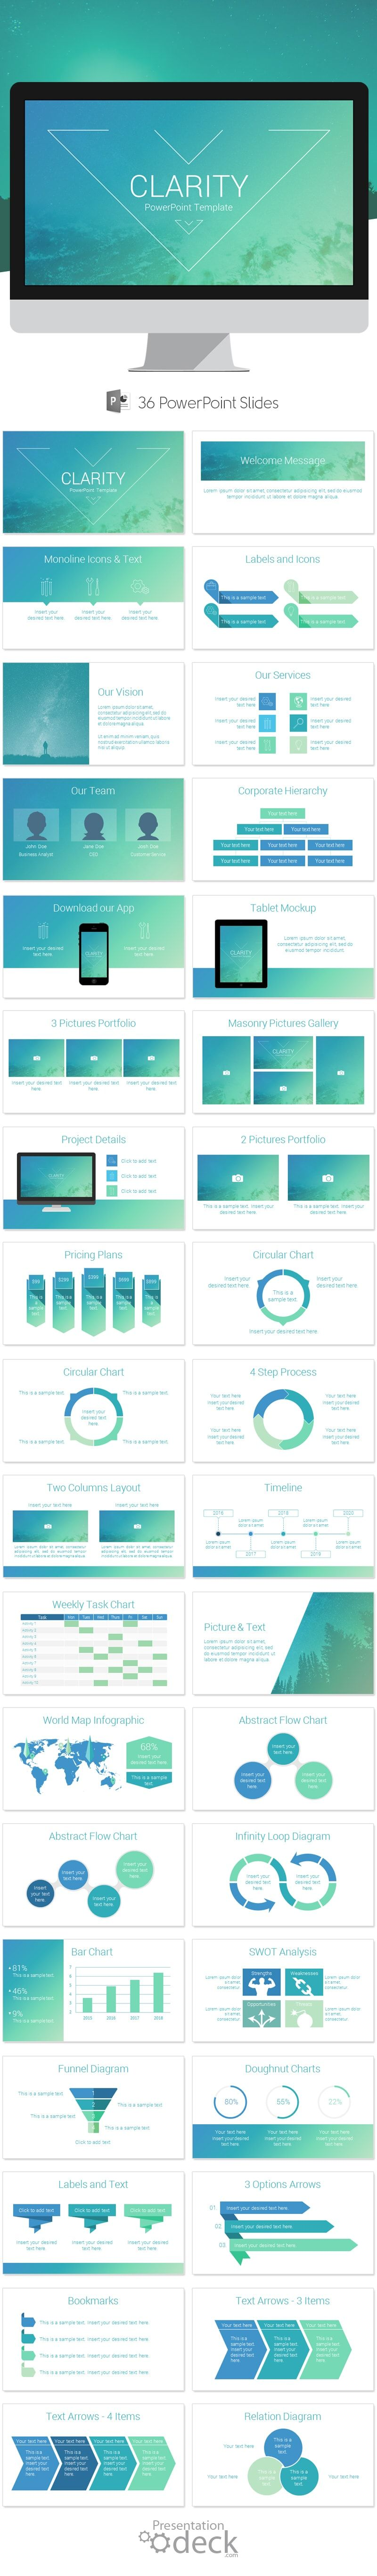 Clarity powerpoint template powerpoint presentation templates clarity powerpoint template alramifo Image collections